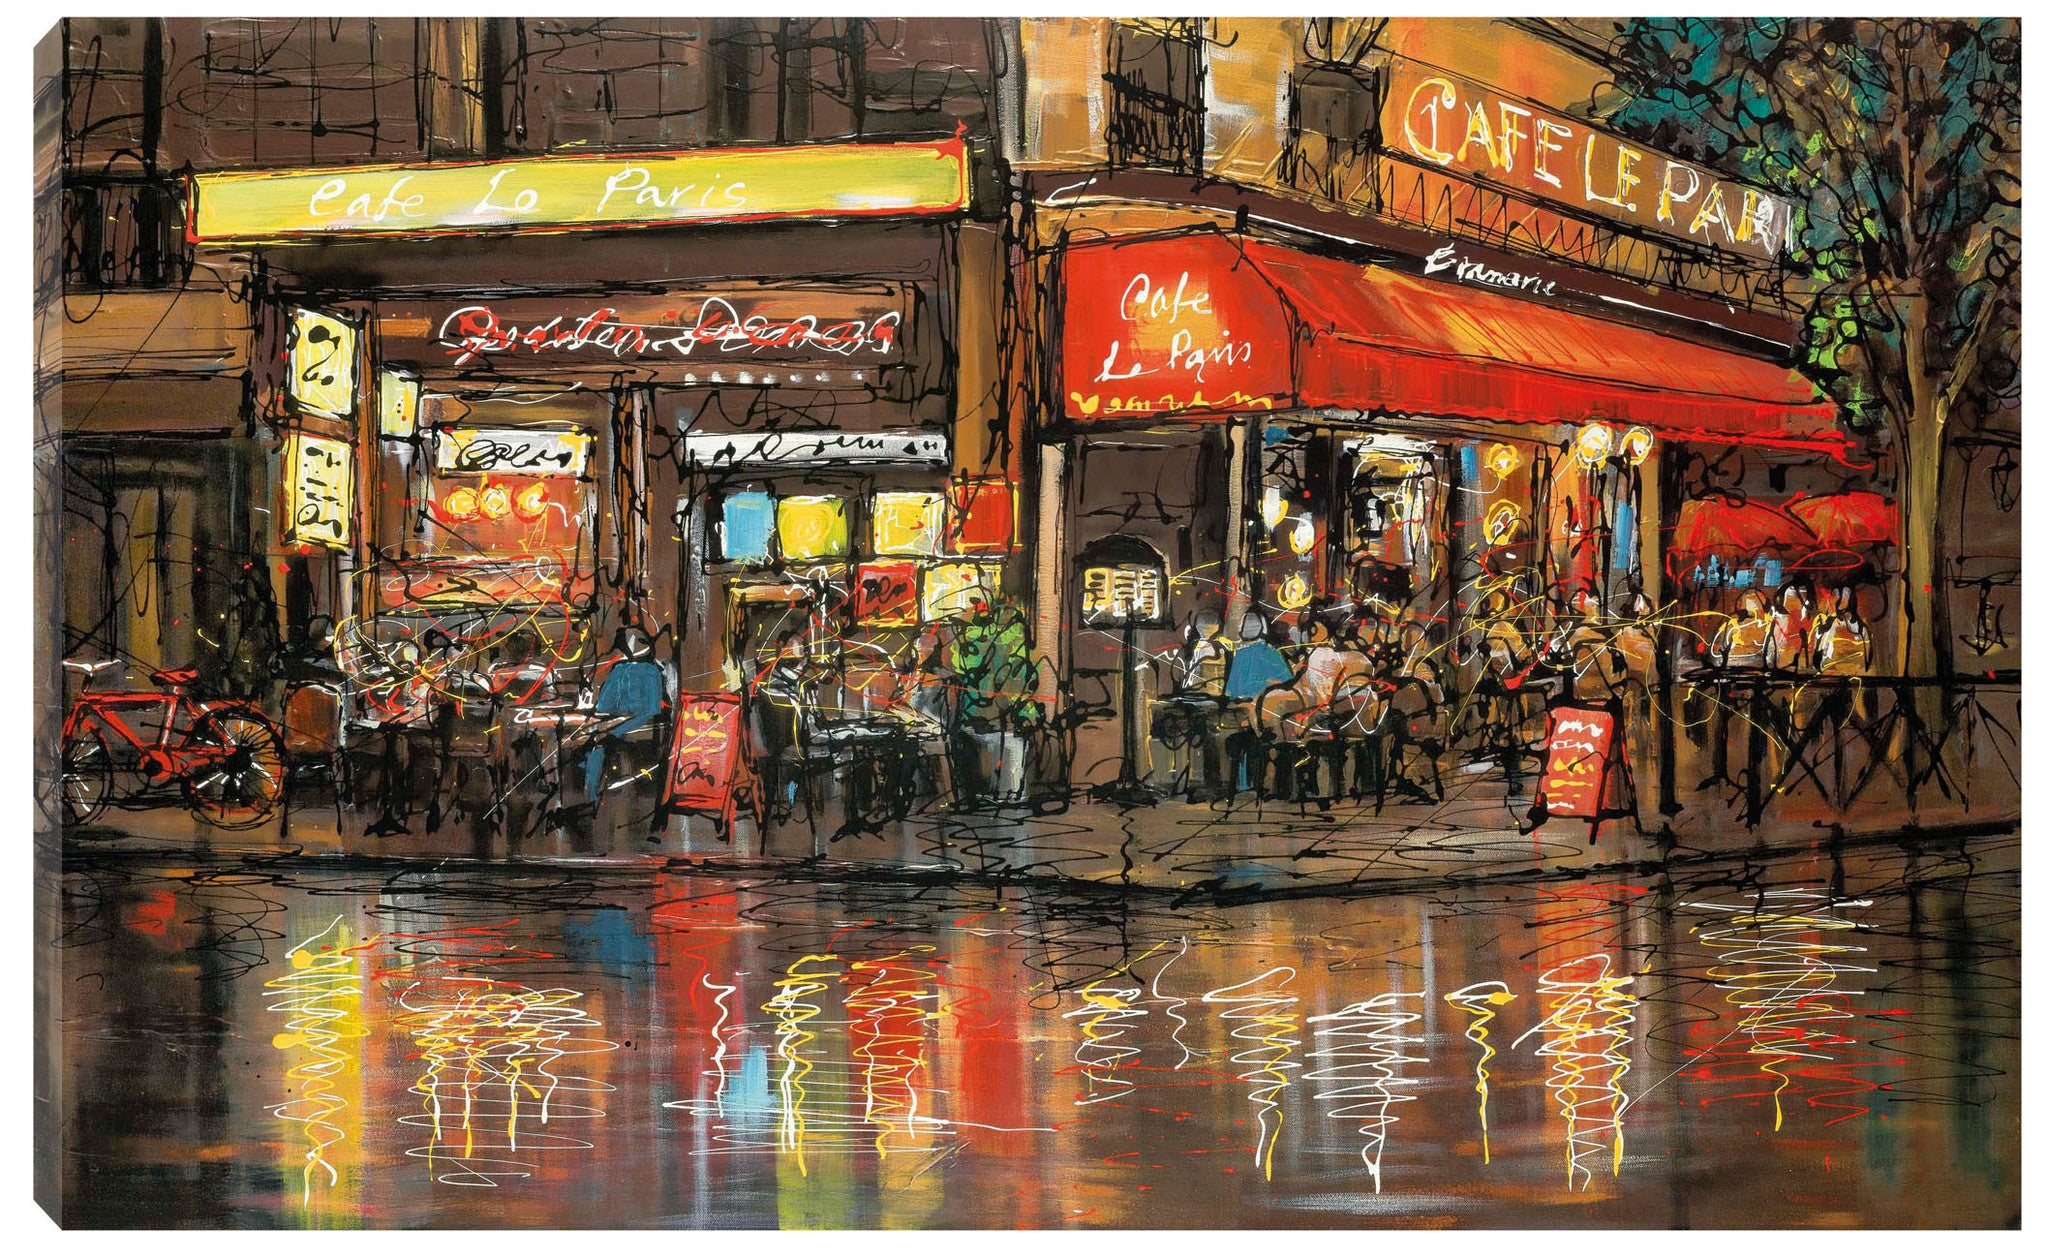 One Night In Paris - 2013 - Paul Kenton - Low Availability - Antidote Art